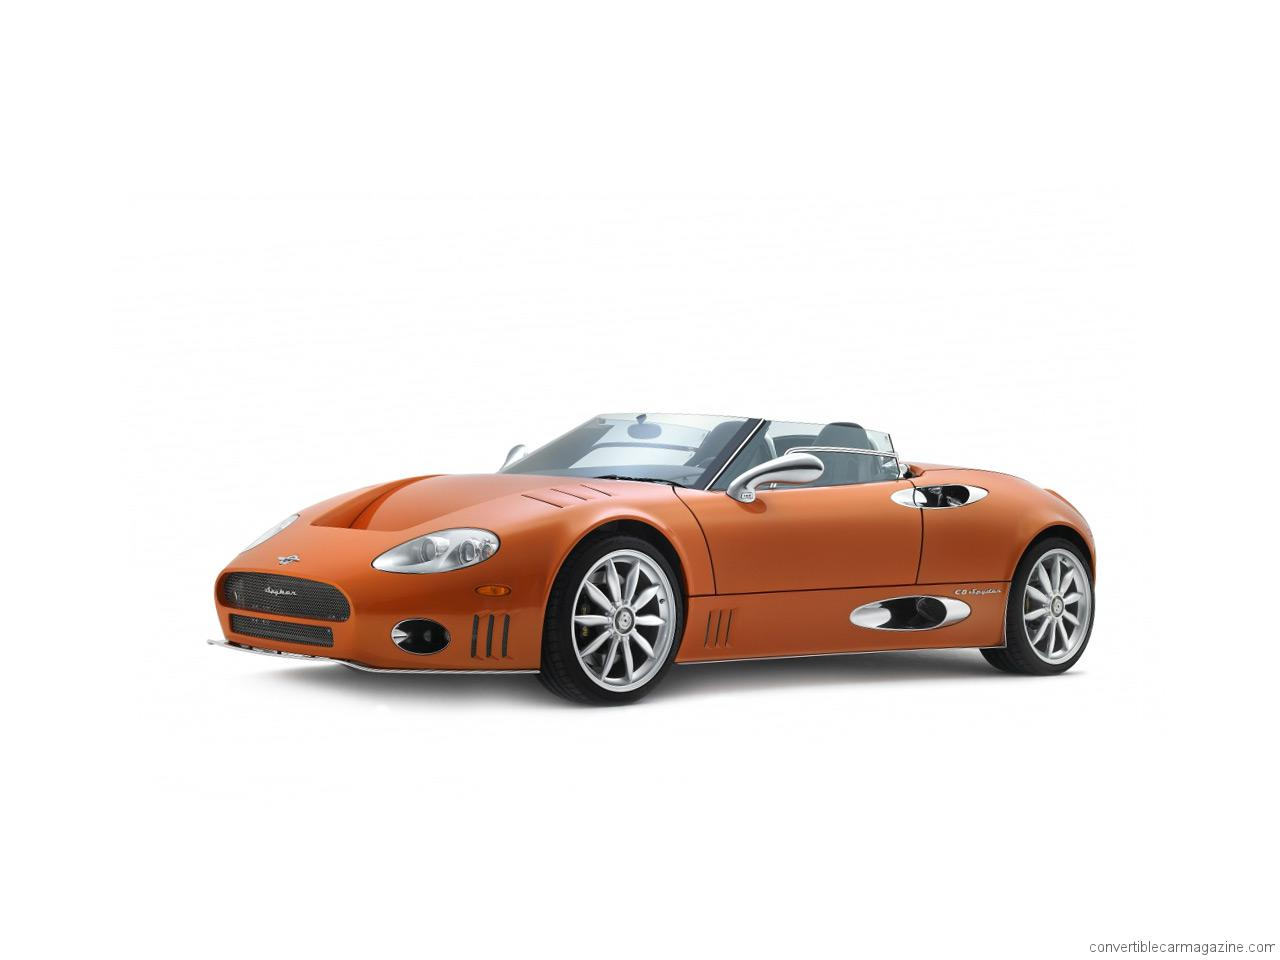 2019 Spyker C8 Aileron Spyder photo - 3